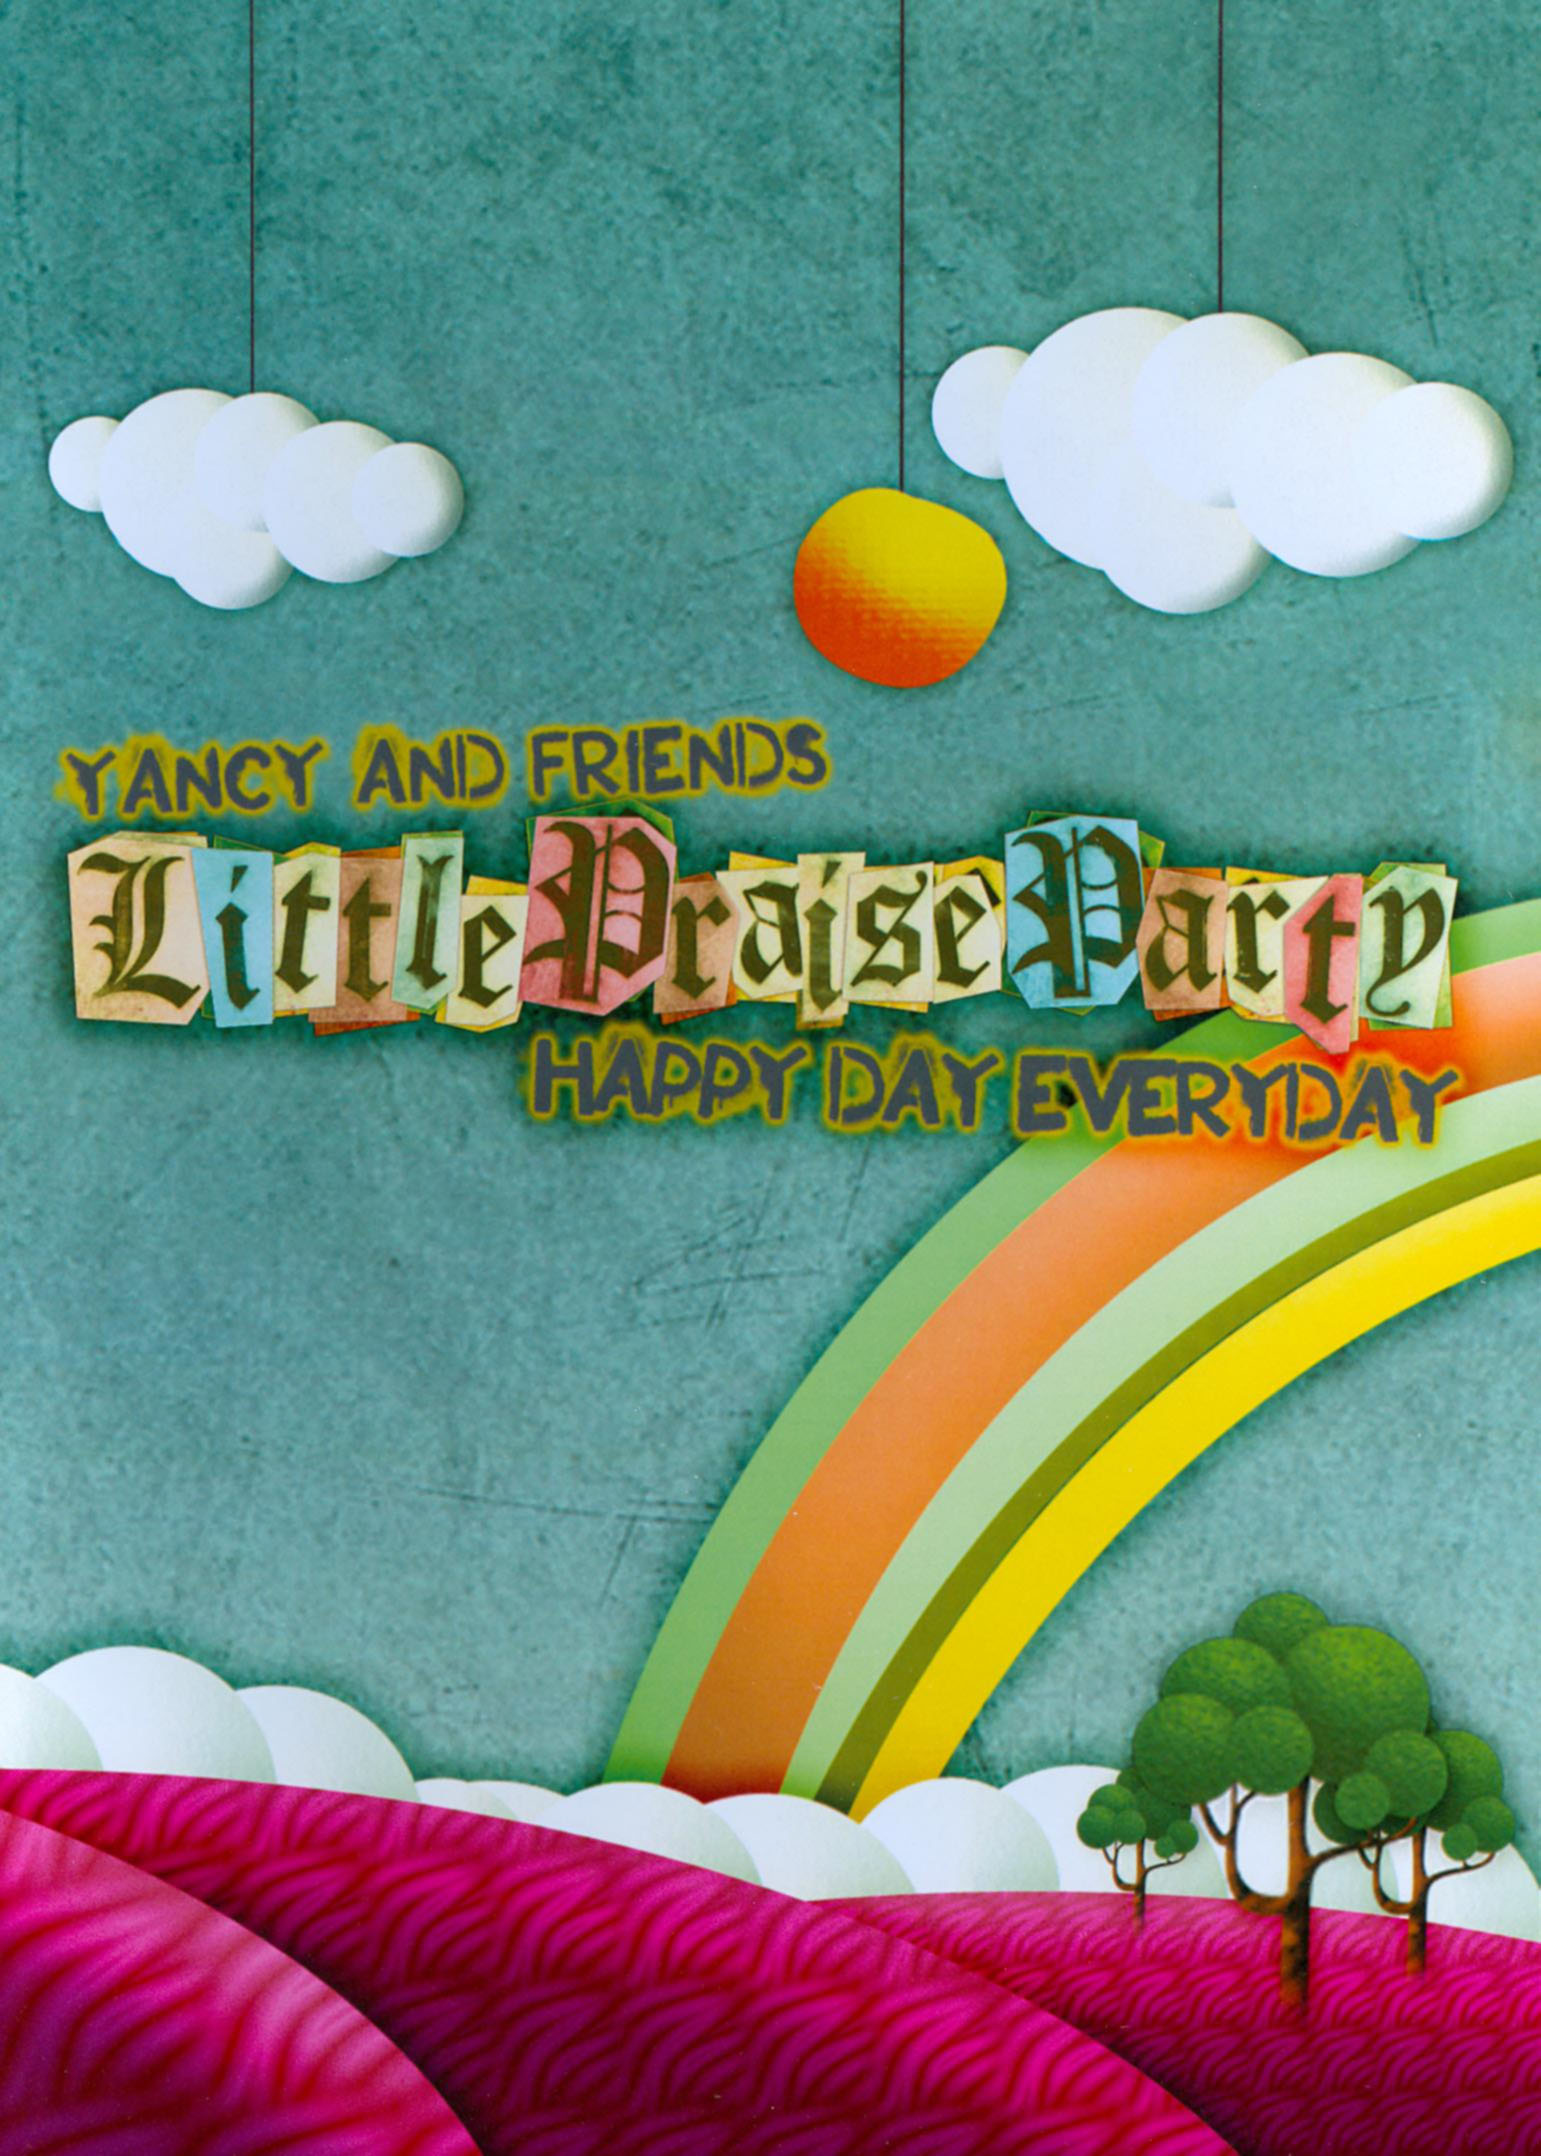 Yancy and Friends: Little Praise Party - Happy Day Everyday